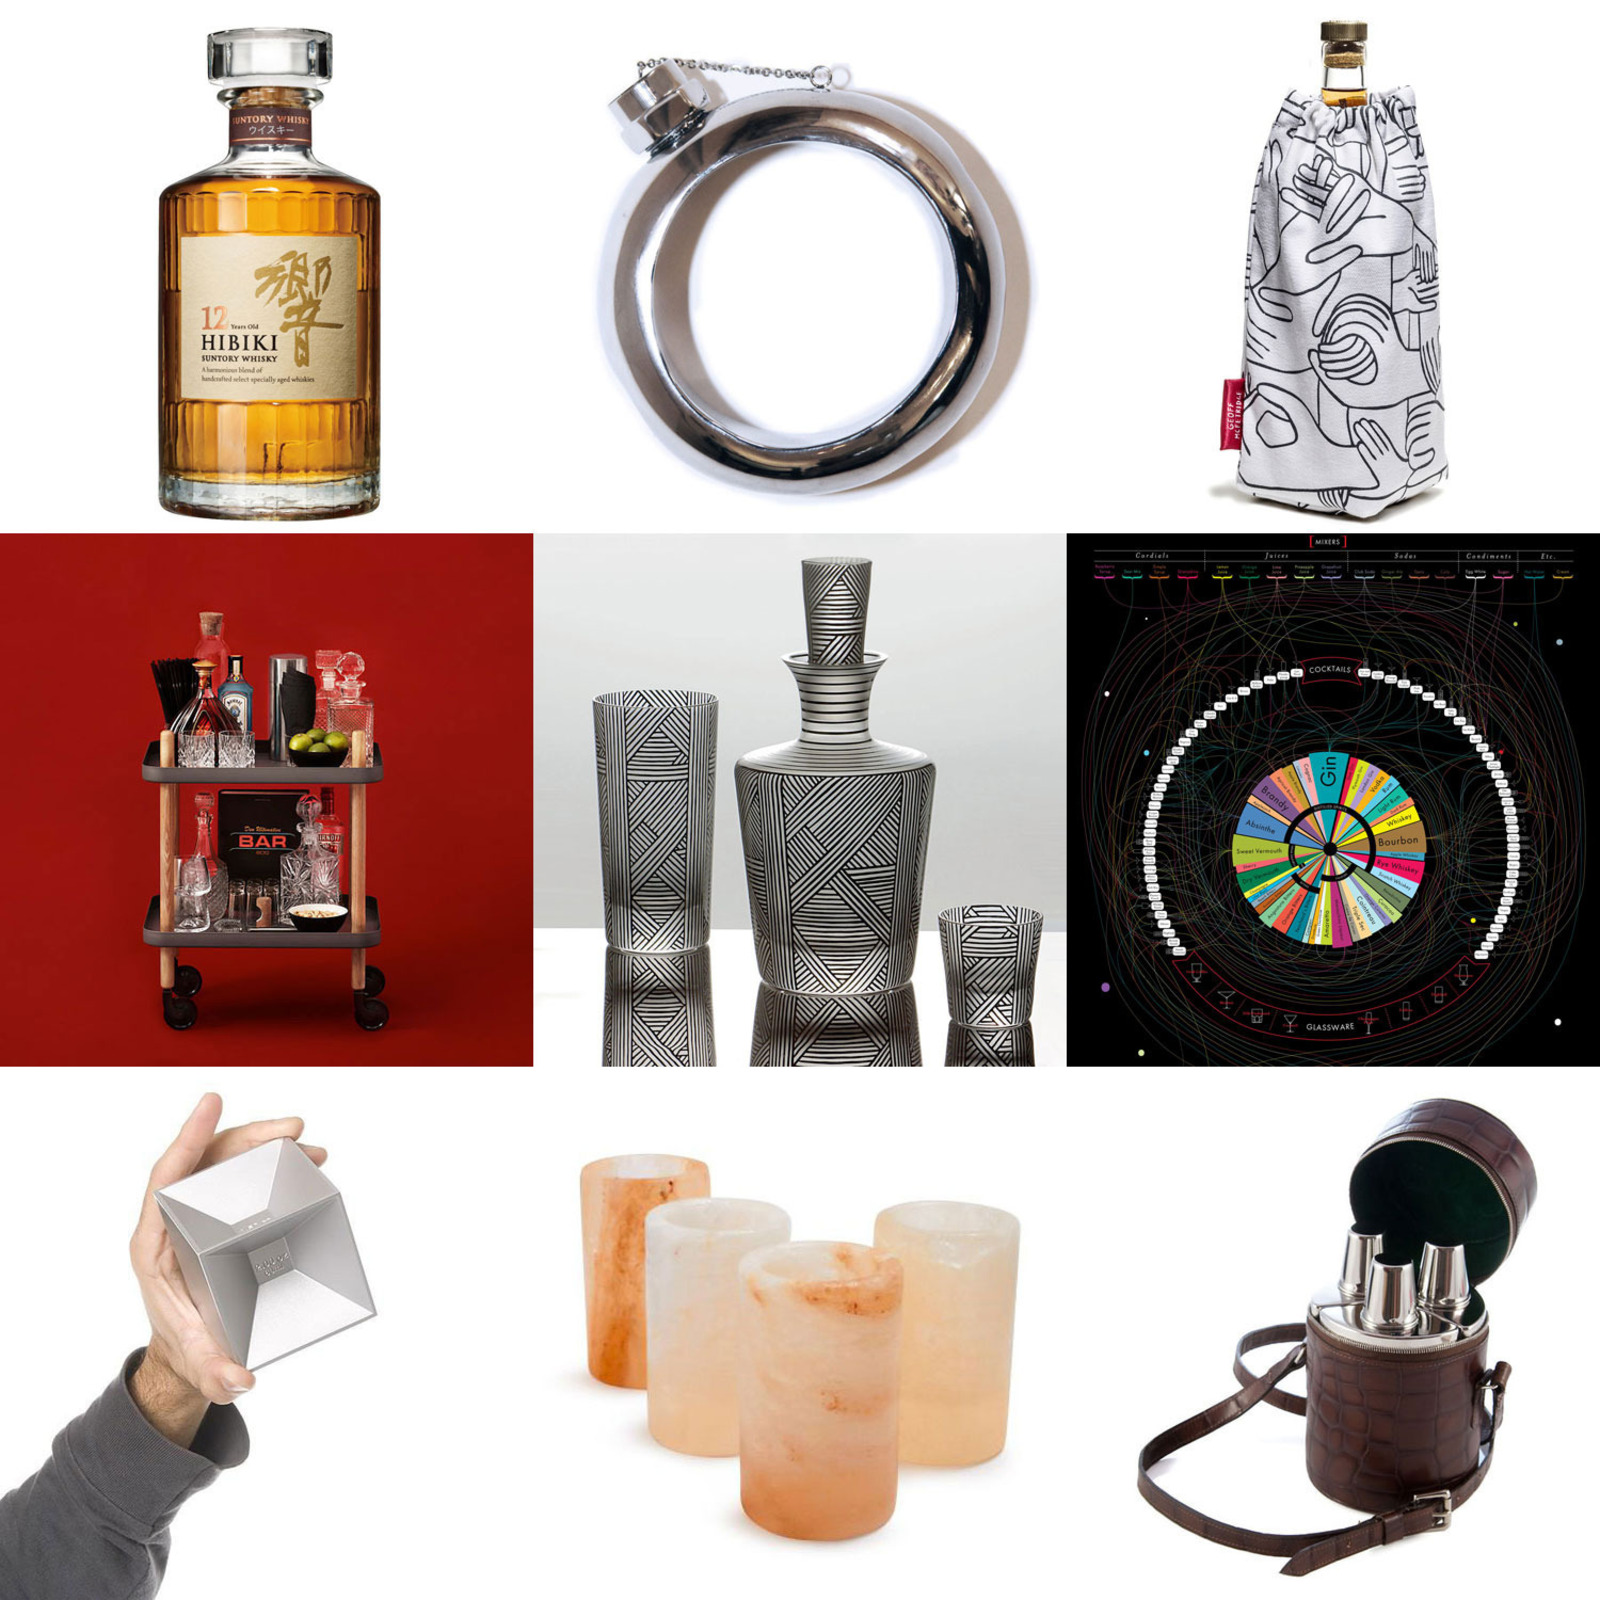 Gastronomista for Cool Hunting Gift Guide - Cool Hunting